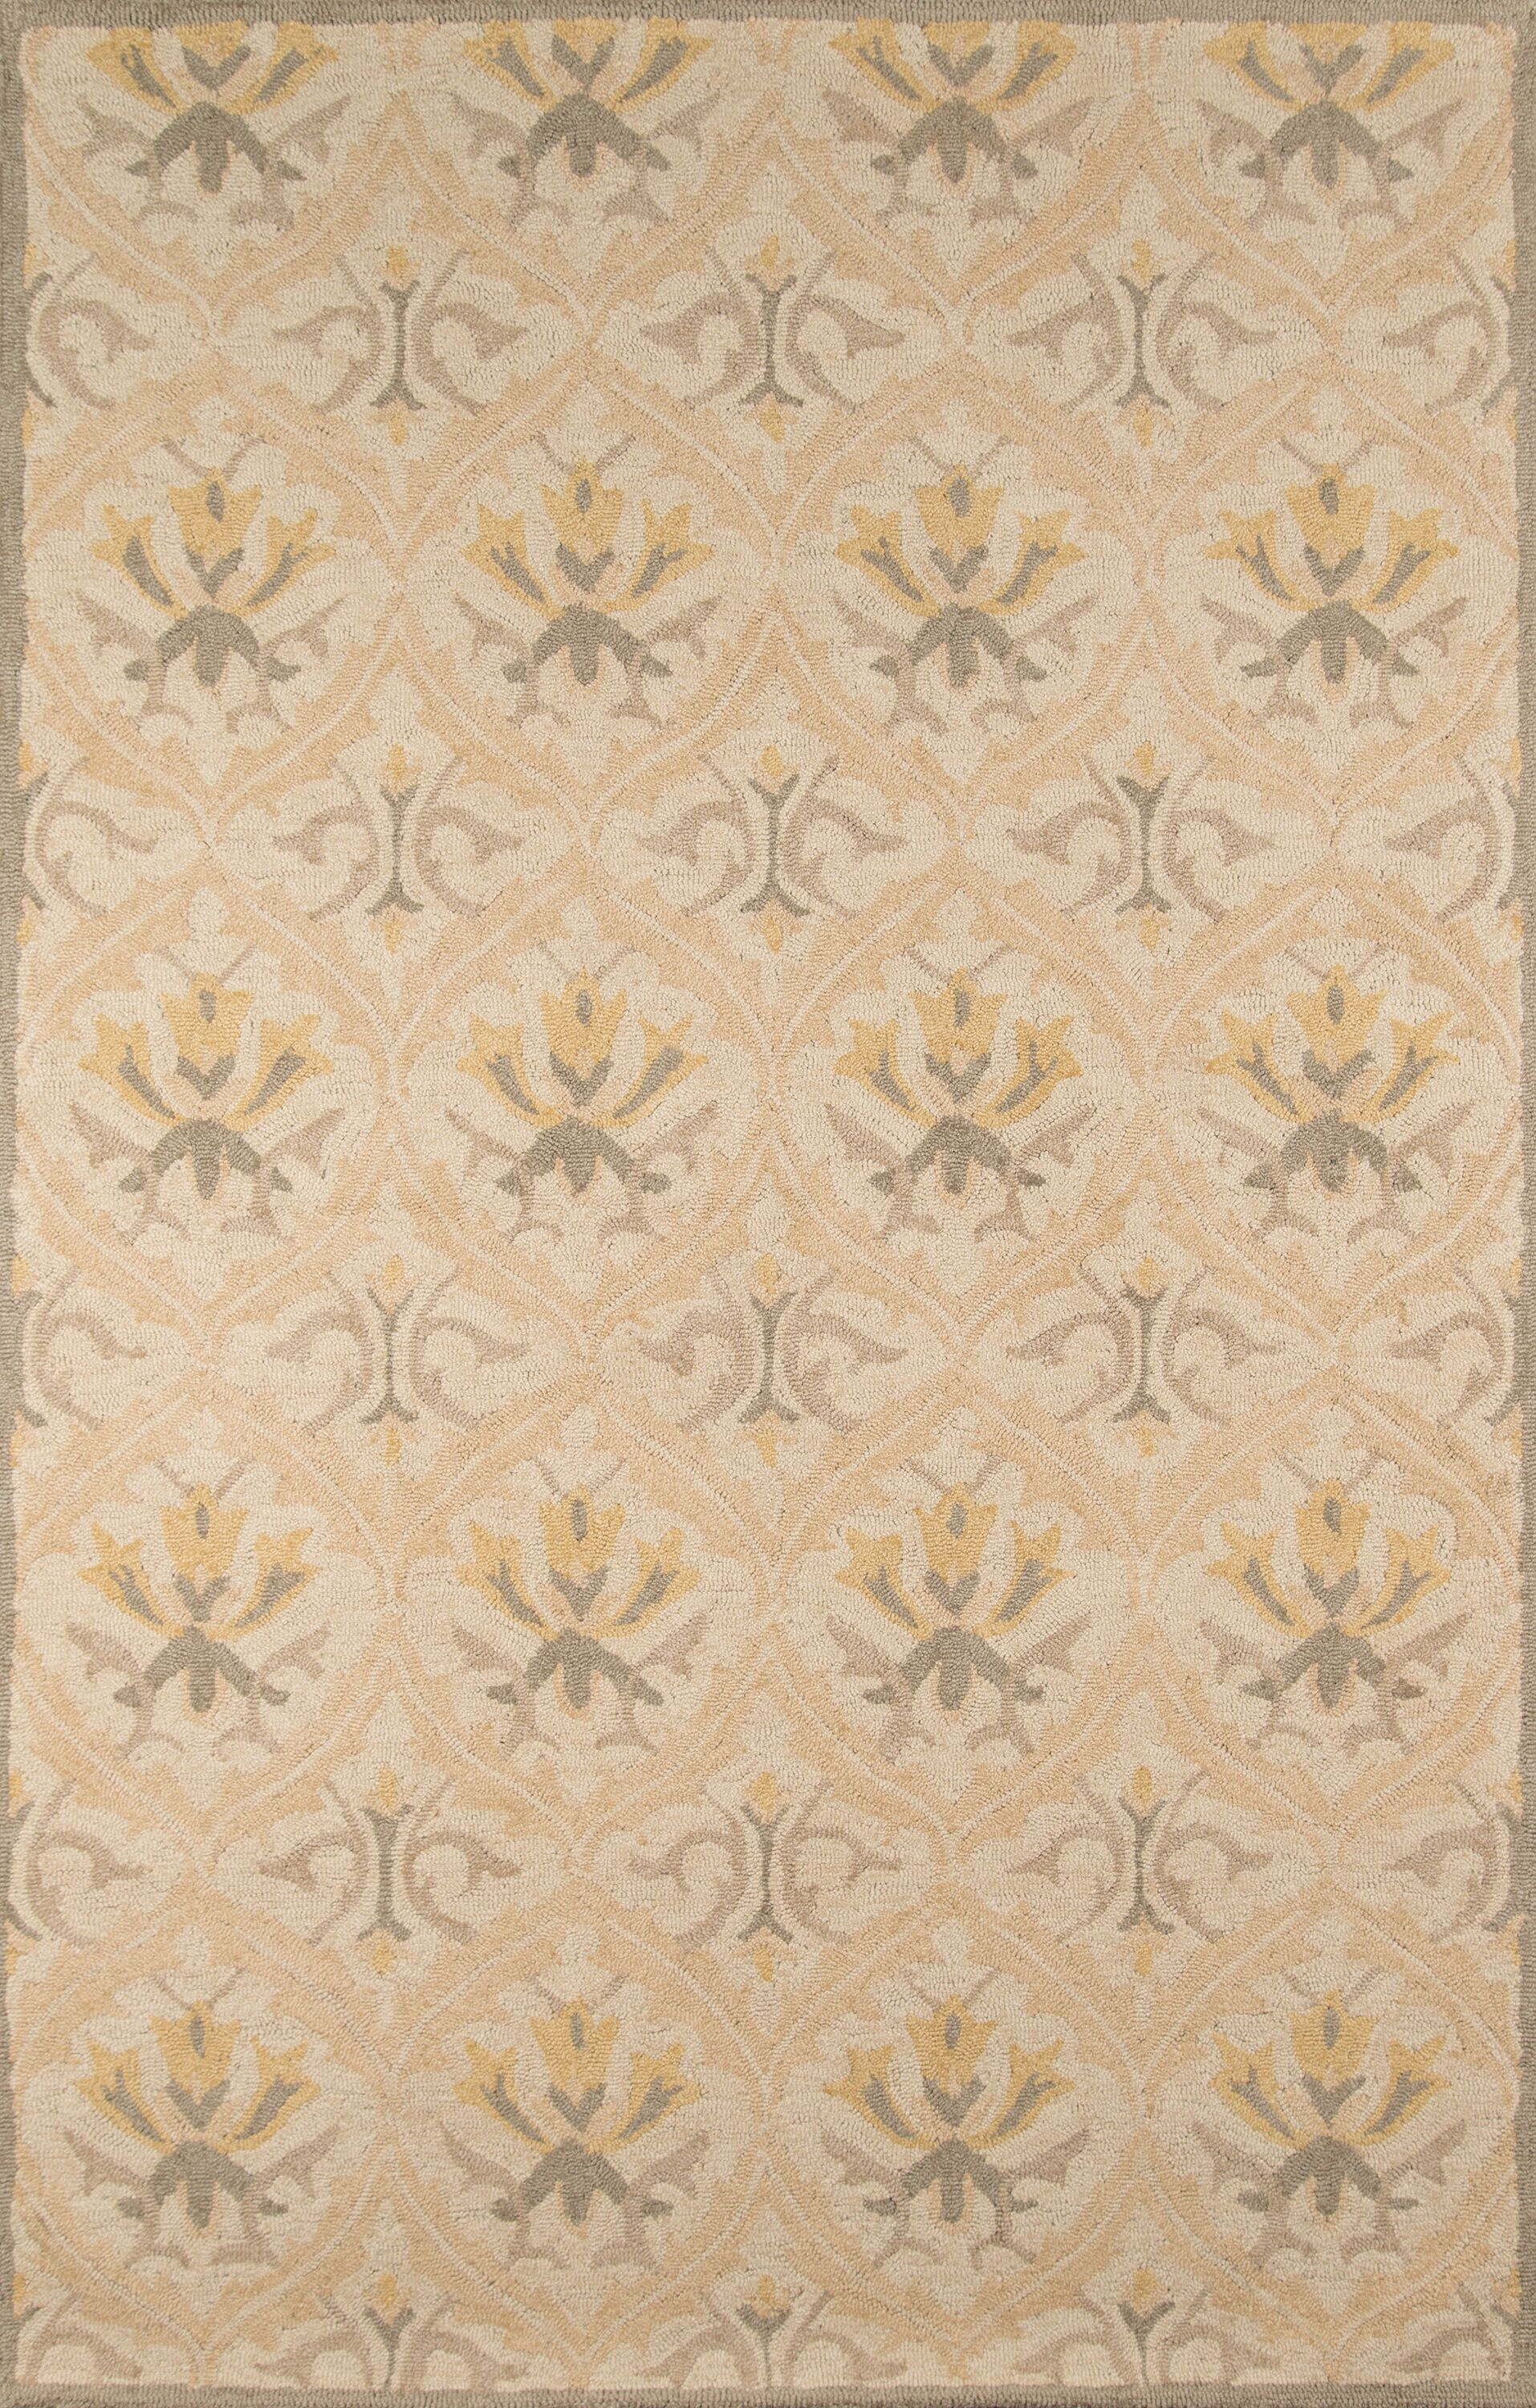 Suzanne Hand-Tufted Beige Area Rug Rug Size: Rectangle 3'9